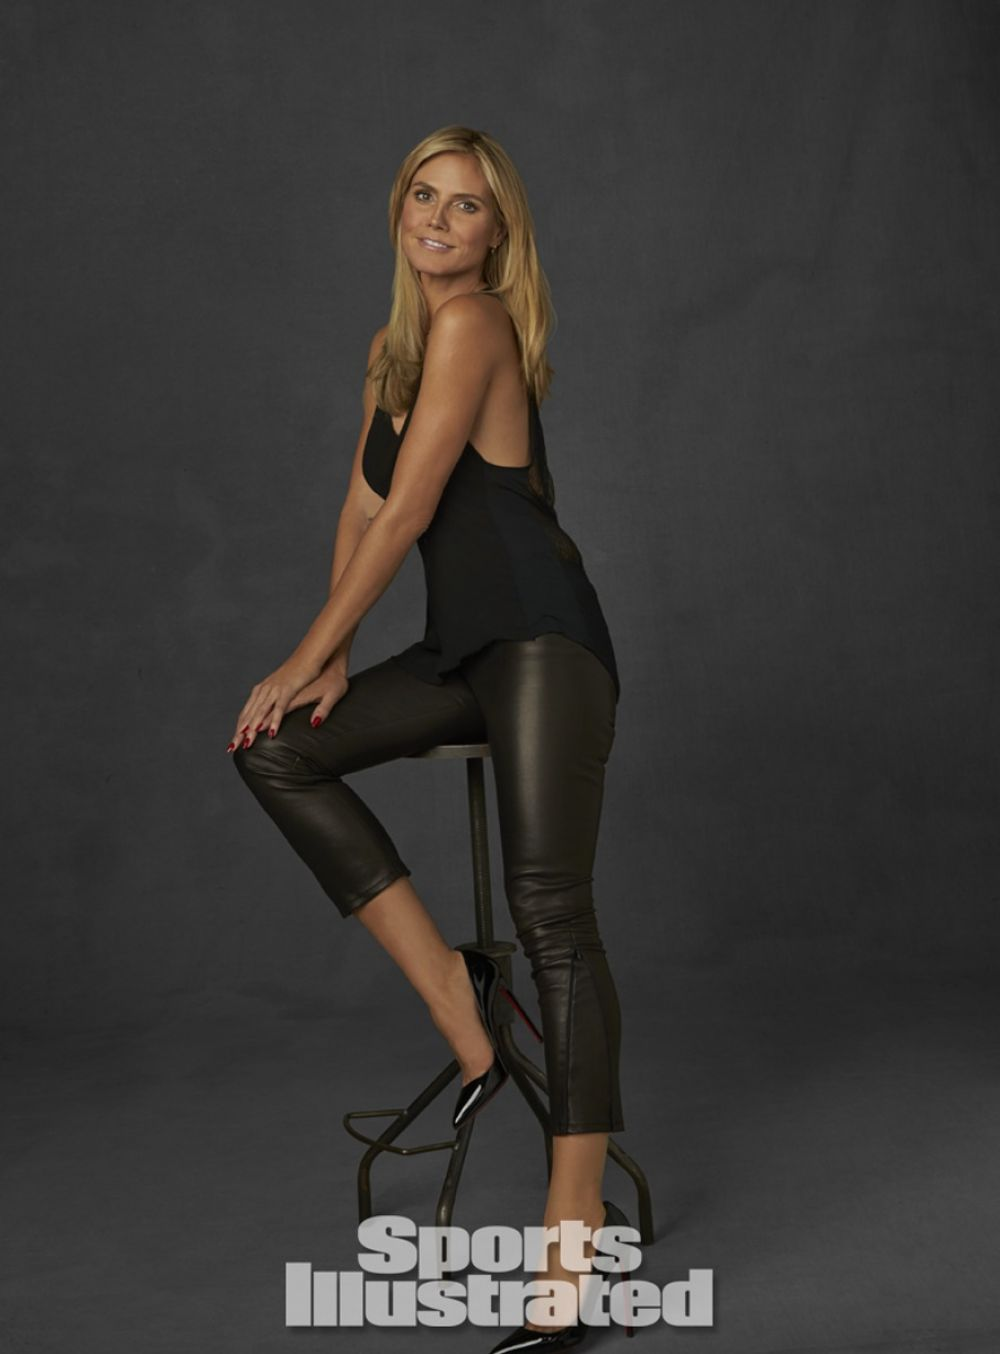 heidi klum x heidi klum and maserati go beyond the swimsuit for sports ...